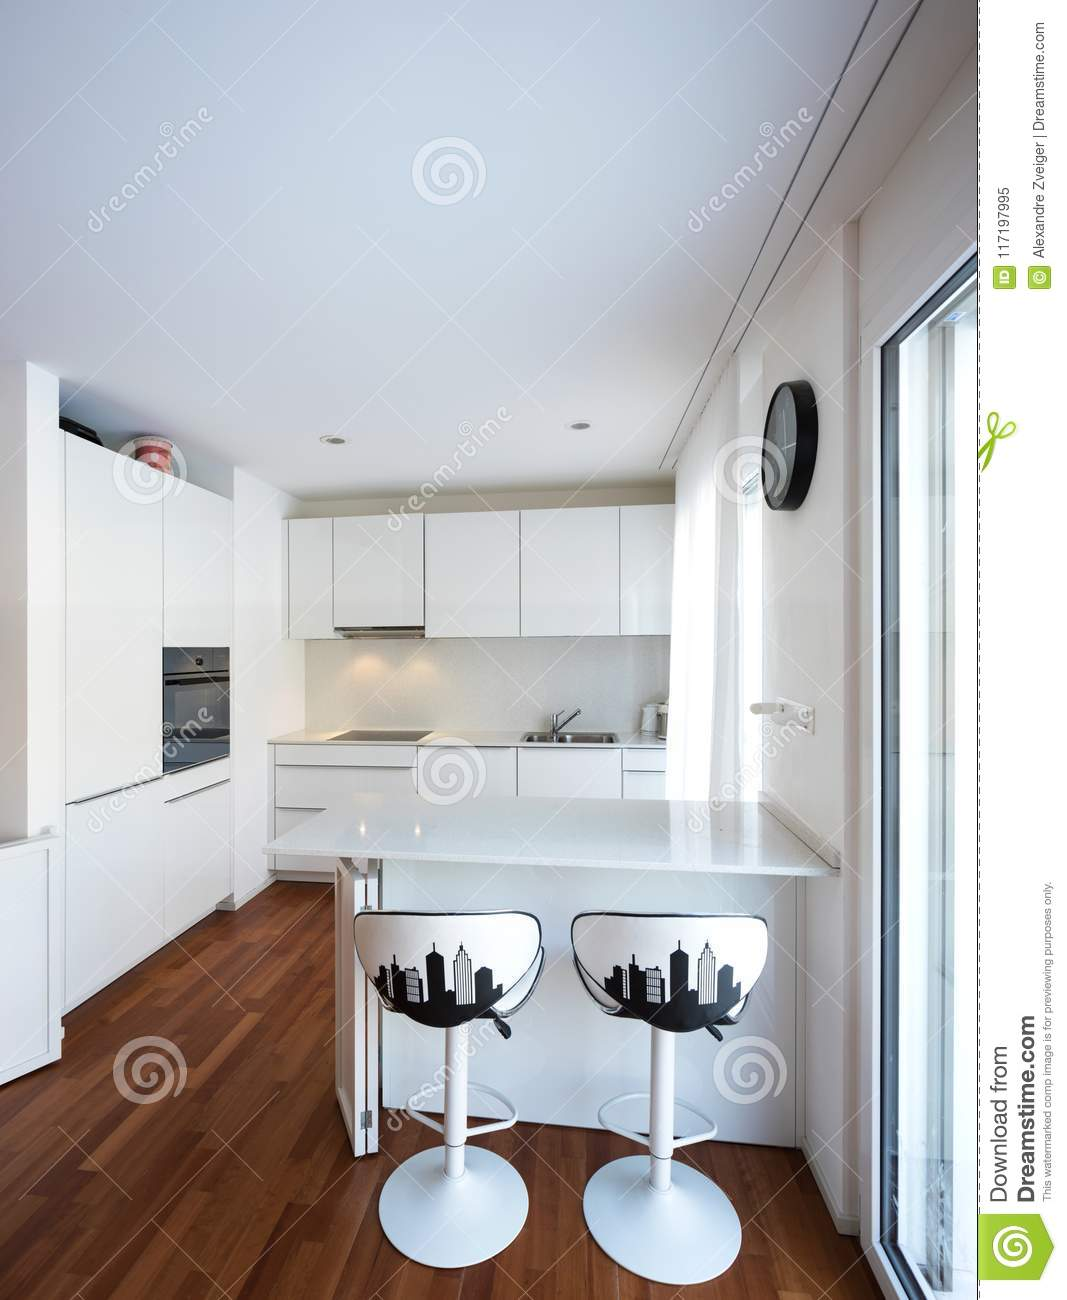 Modern White Kitchen With Peninsula Stock Image - Image of inside ...